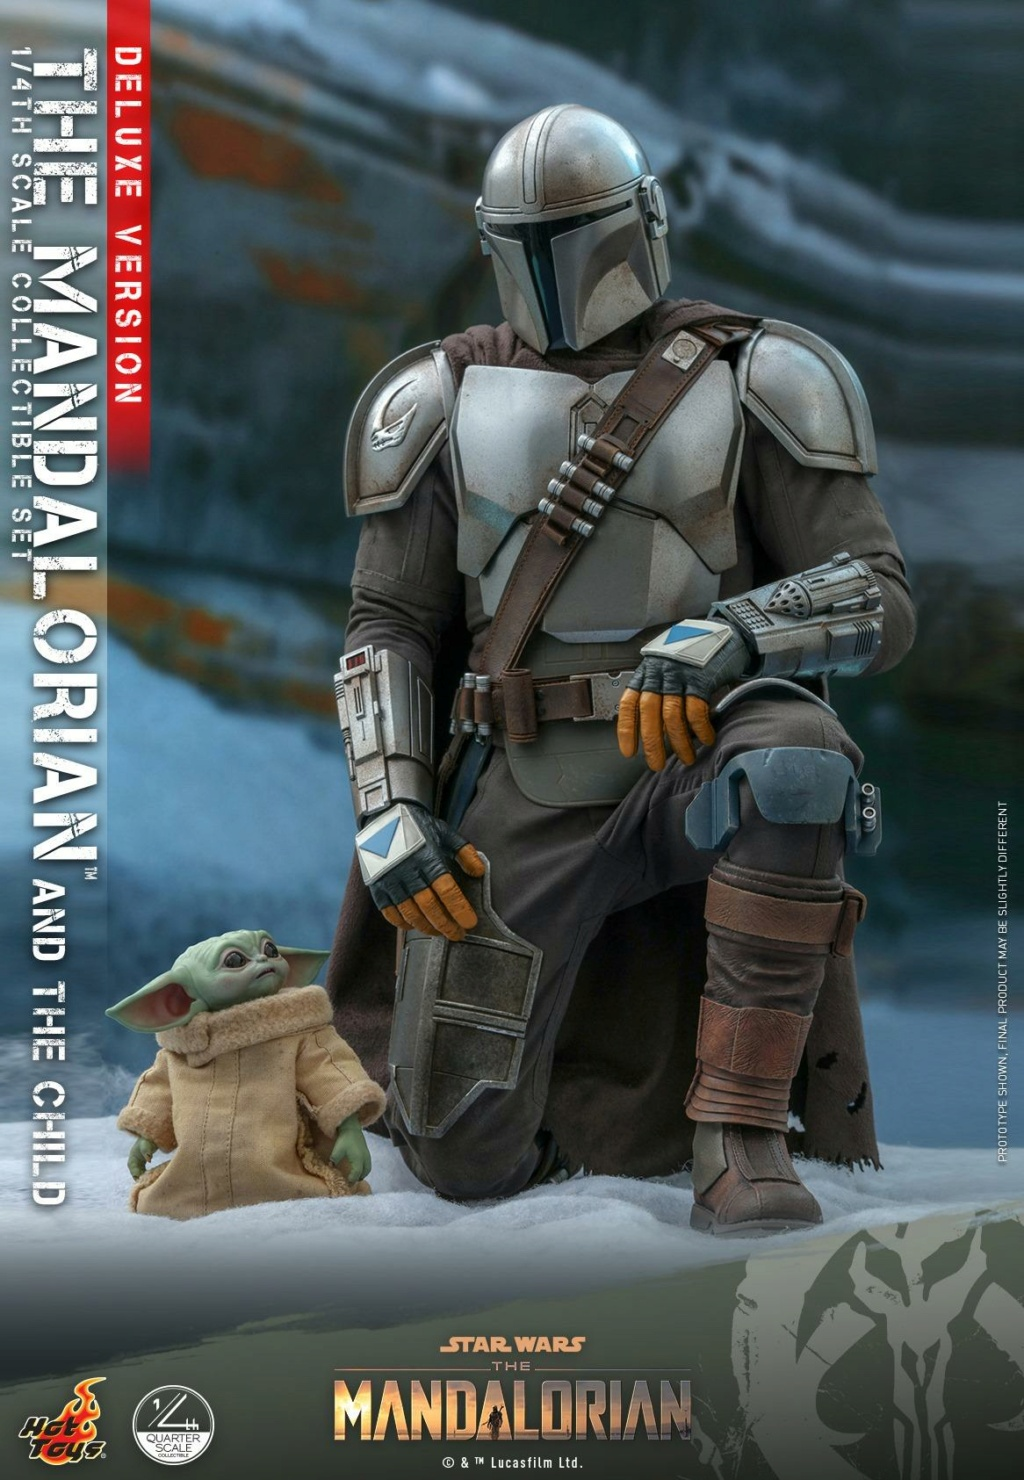 The Mandalorian & The Child Set (Deluxe) 1/4th - Hot Toys 1623